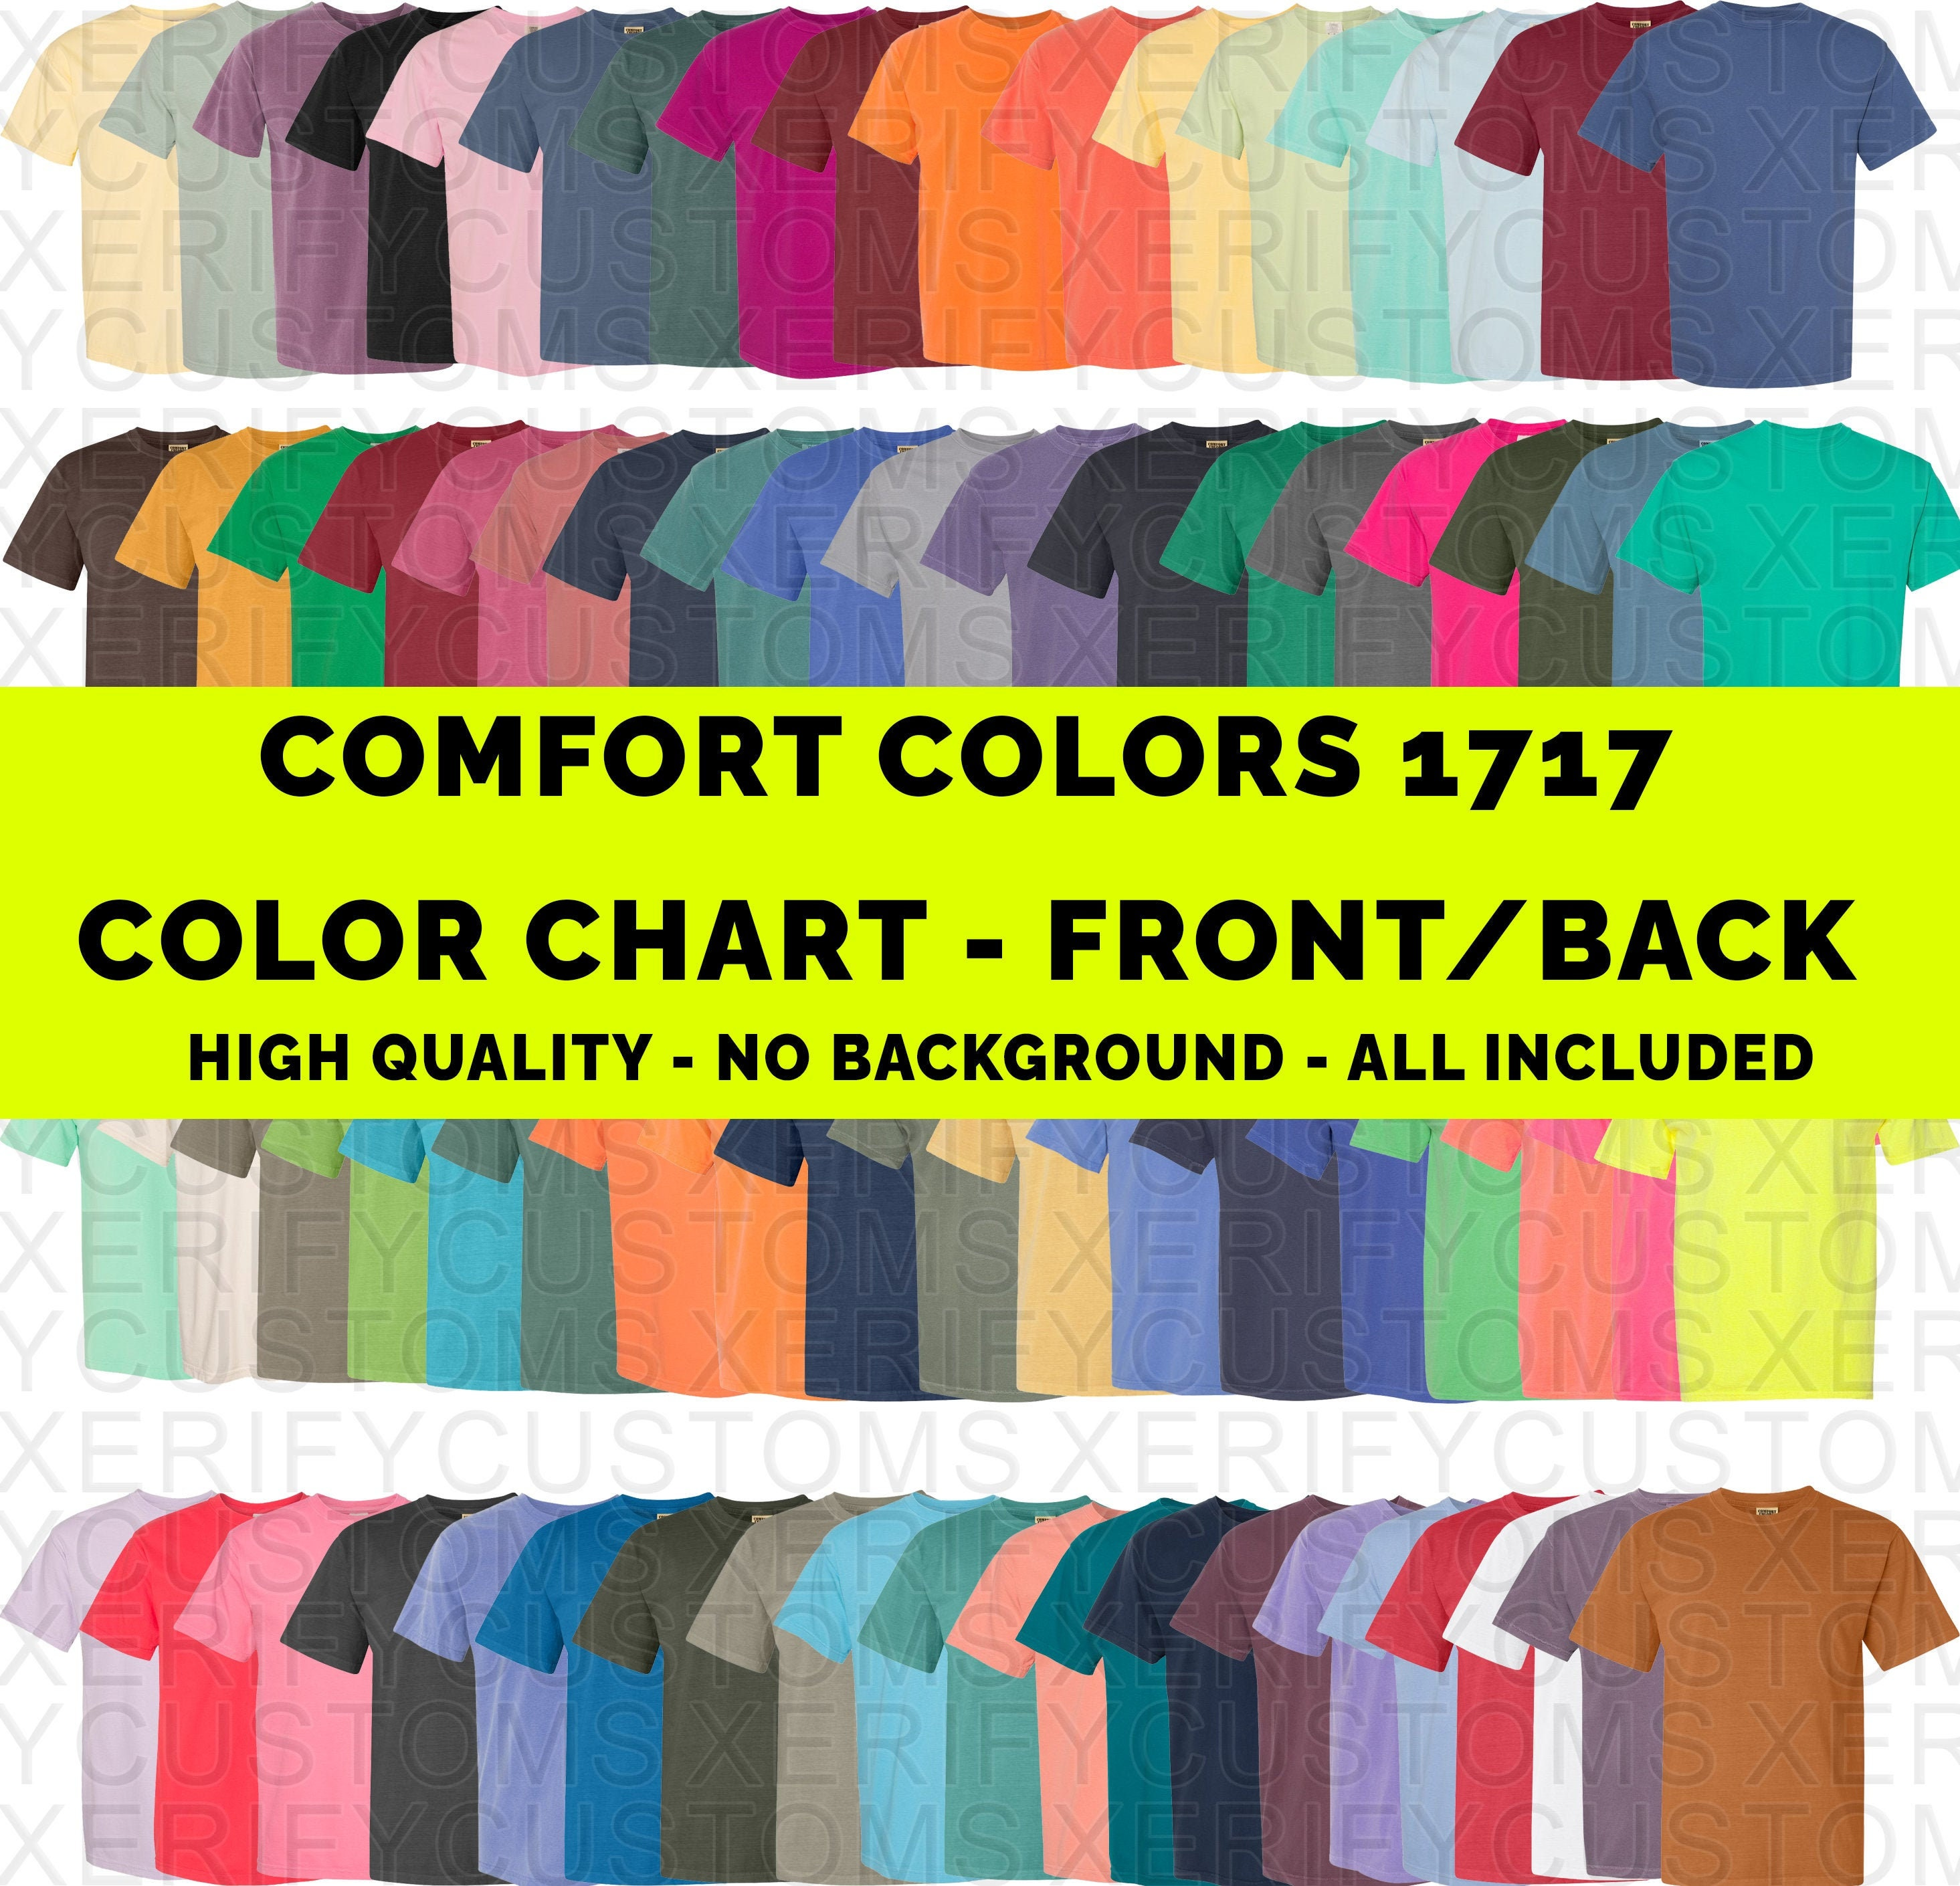 Comfort Colors 20 color chart mock up Front AND Back   Digital   Instant  download   Color guide PNG high quality HD no background